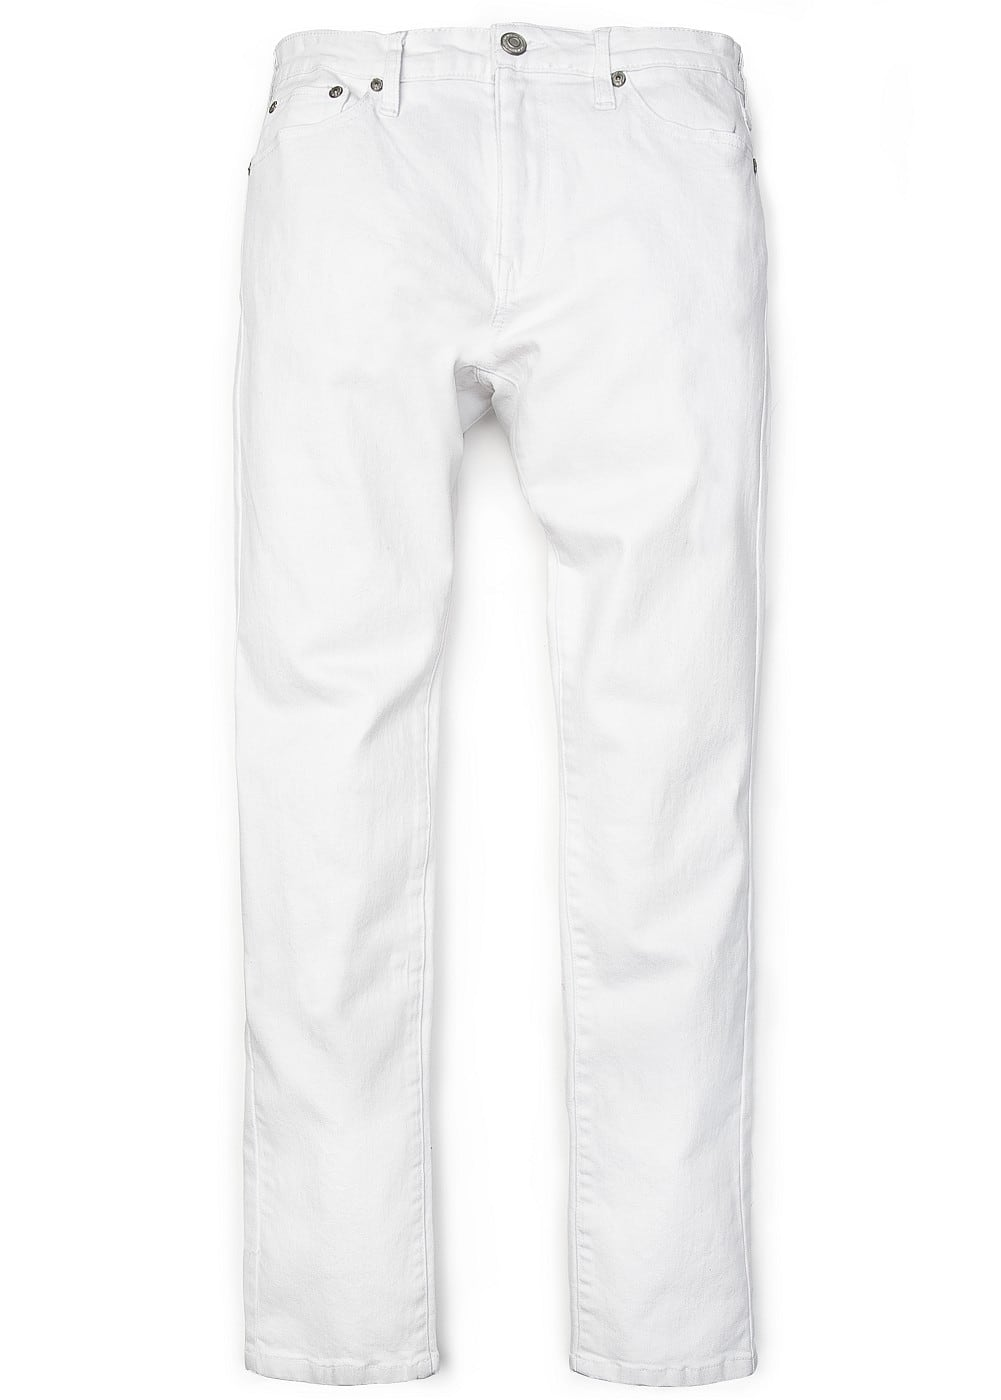 ALEX SLIM-FIT WHITE JEANS